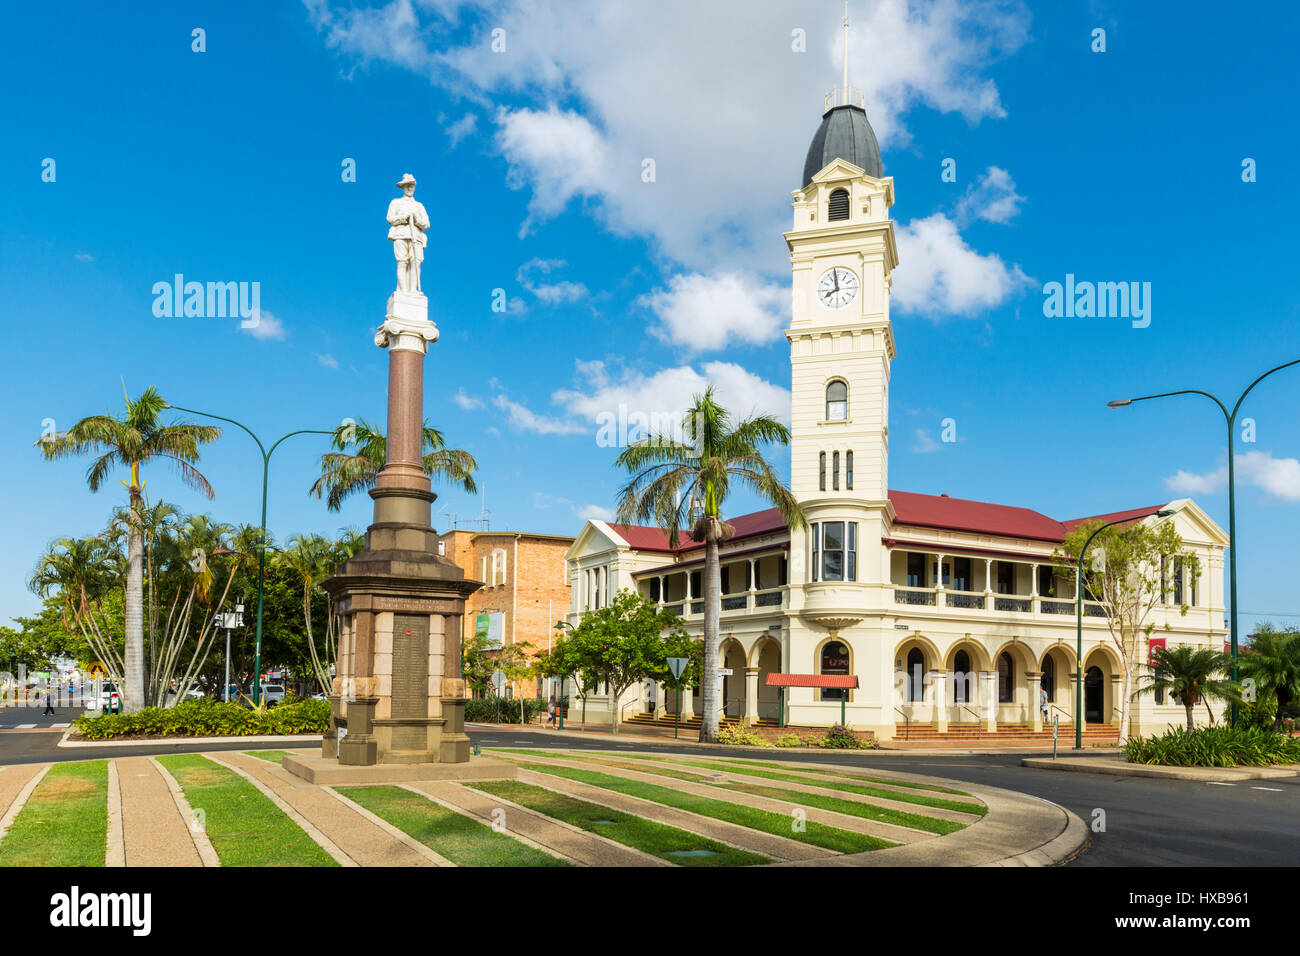 The Bundaberg Post Office and clock tower, along with the Cenotaph War Memorial in the city centre.  Bundaberg, - Stock Image